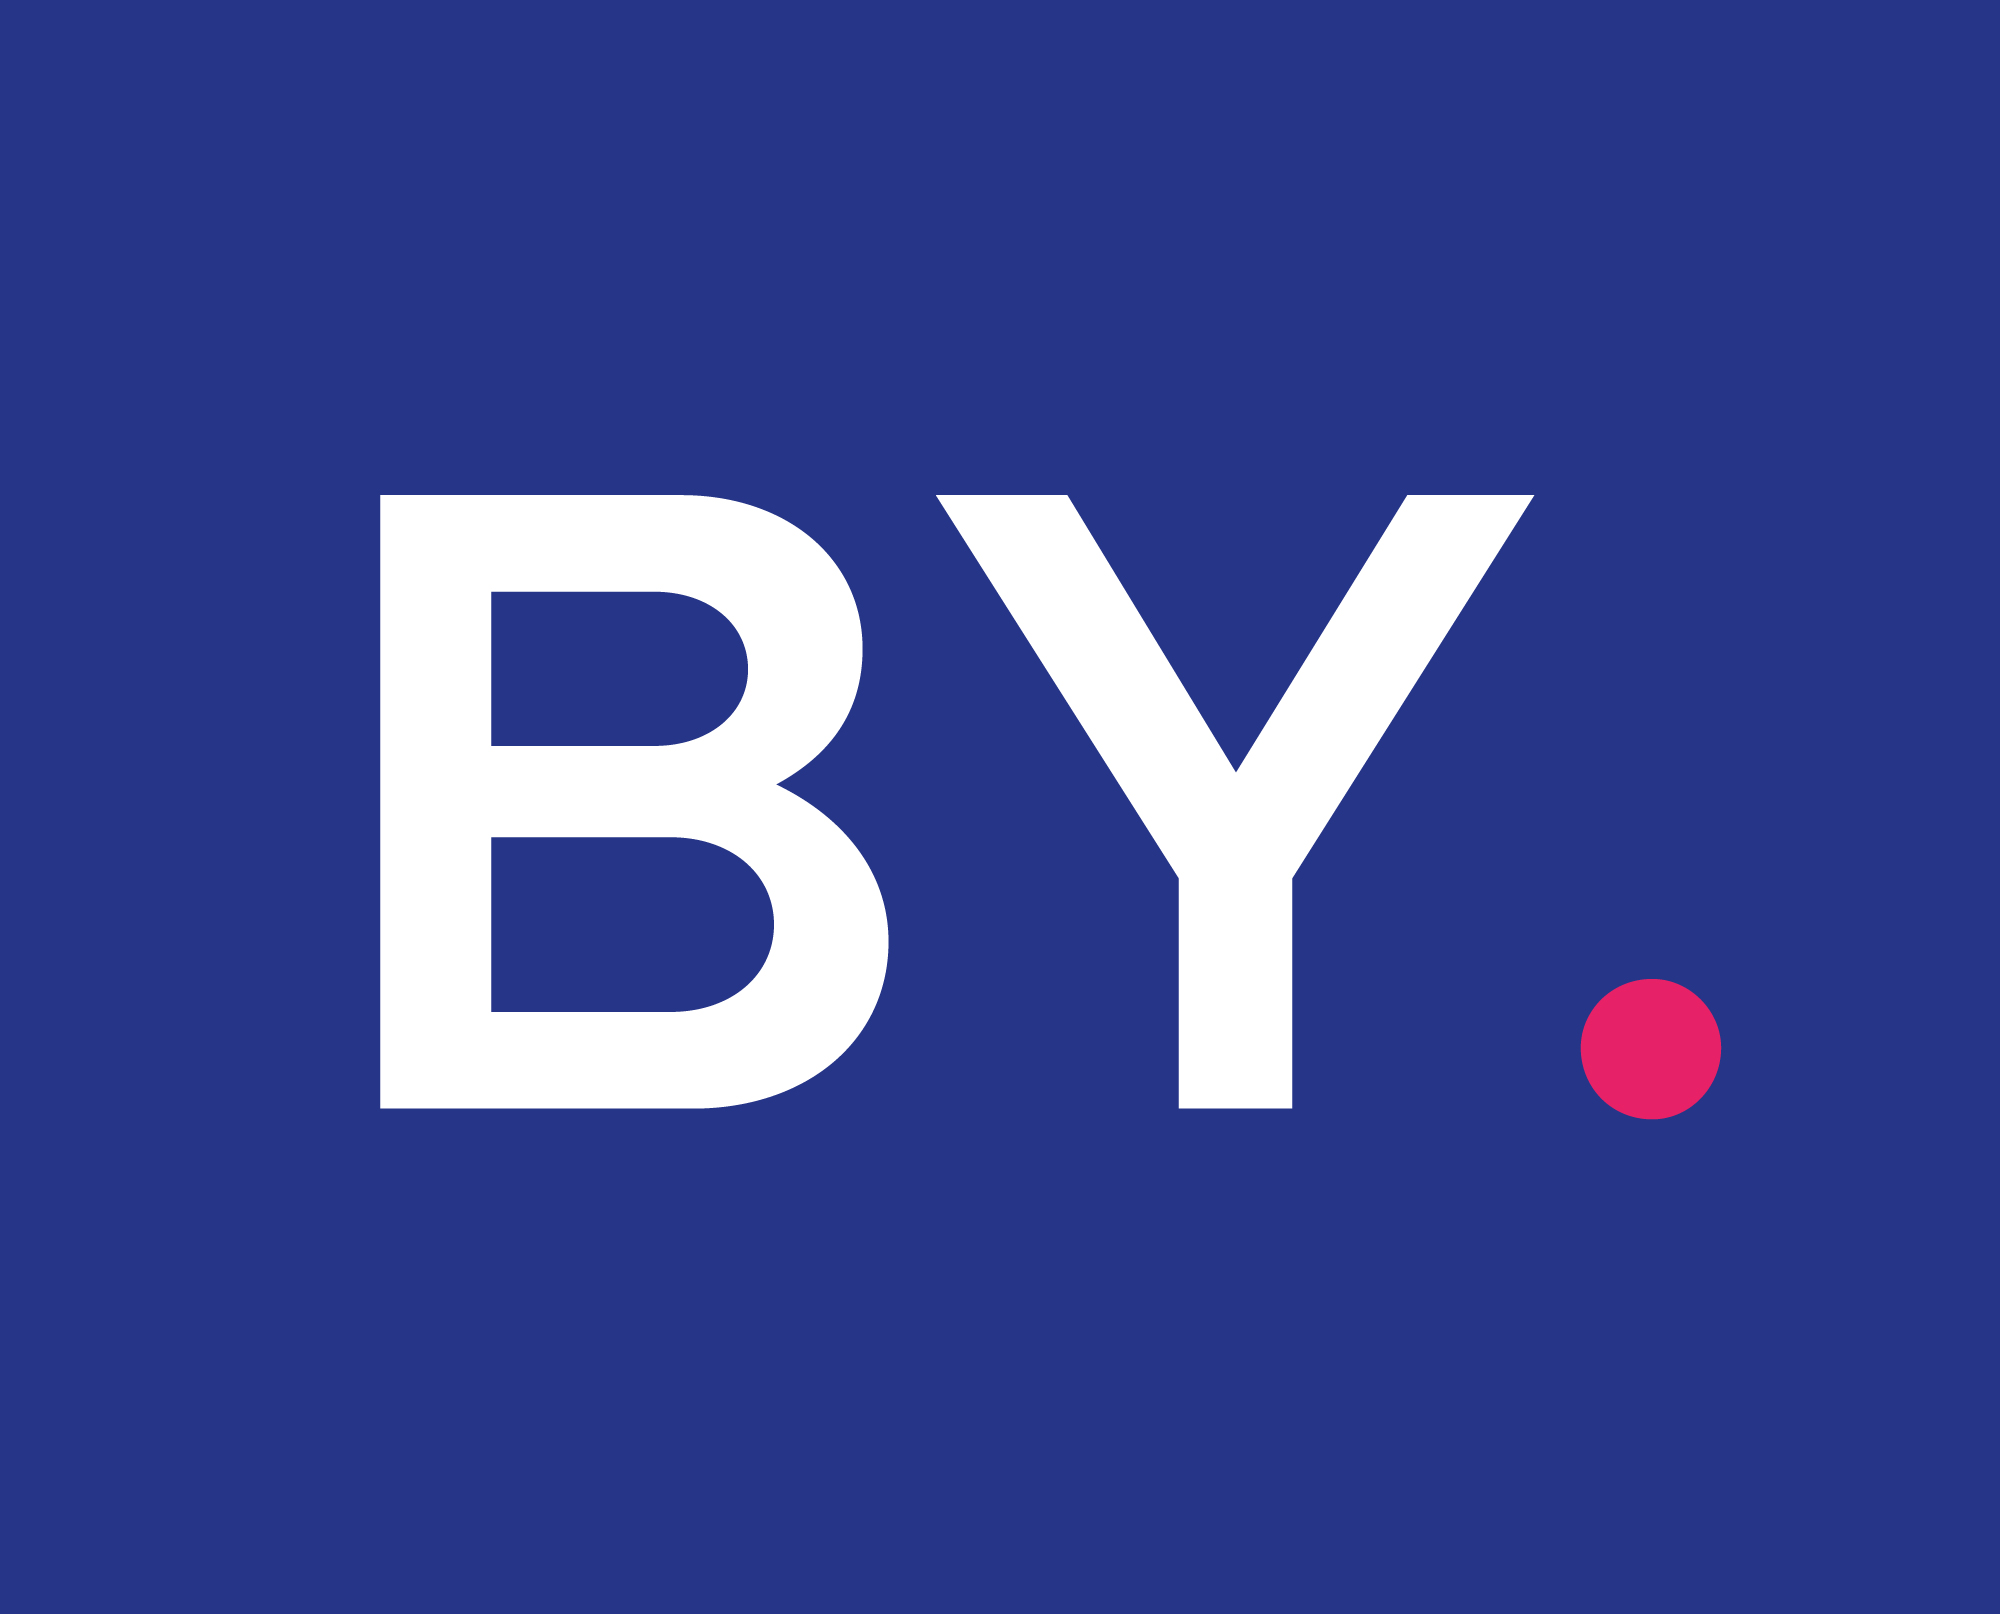 BYCONCEPT